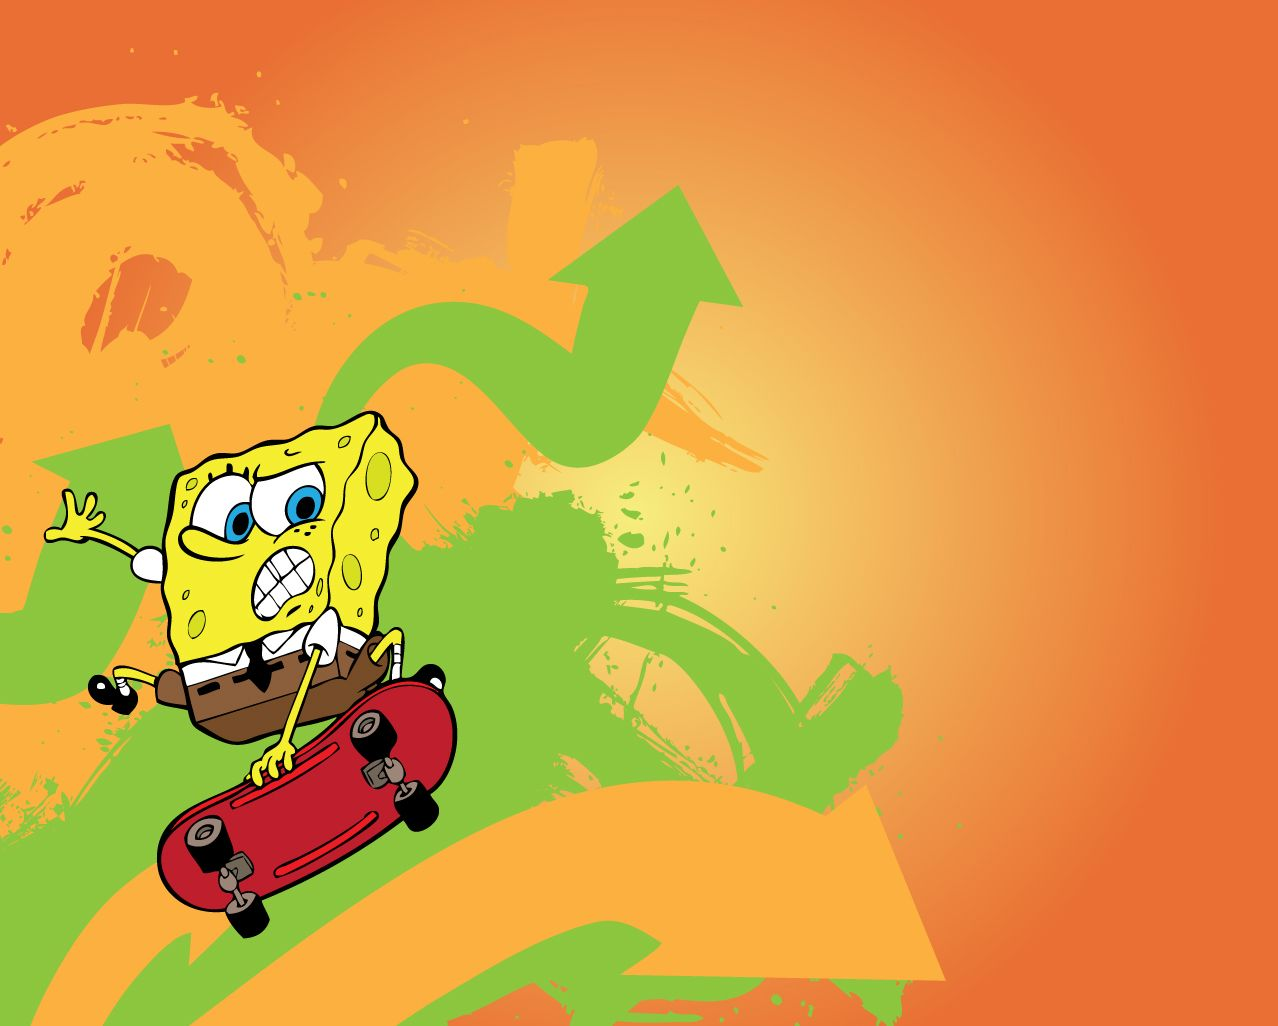 Spongebob Wallpaper para su escritorio Spongebob Wallpaper - Skate